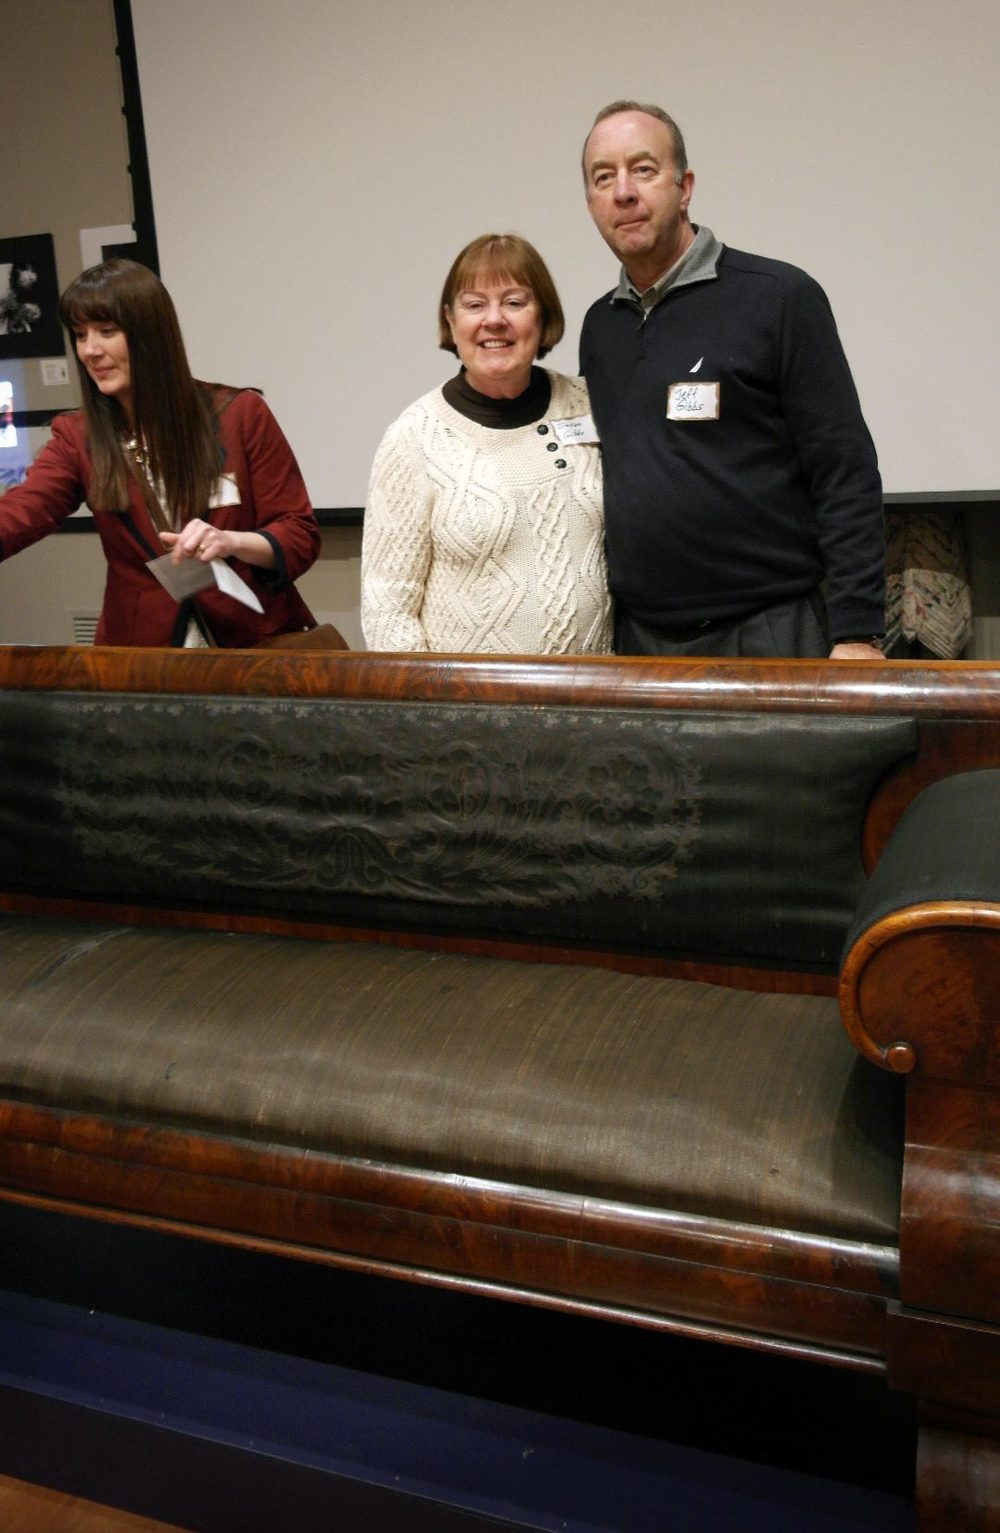 Anne Moseley – Assistant Director of the Lincoln Heritage Museum in Lincoln, Illinois; Susan and Jeff Gibbs – supporters of the Springfield Art Association